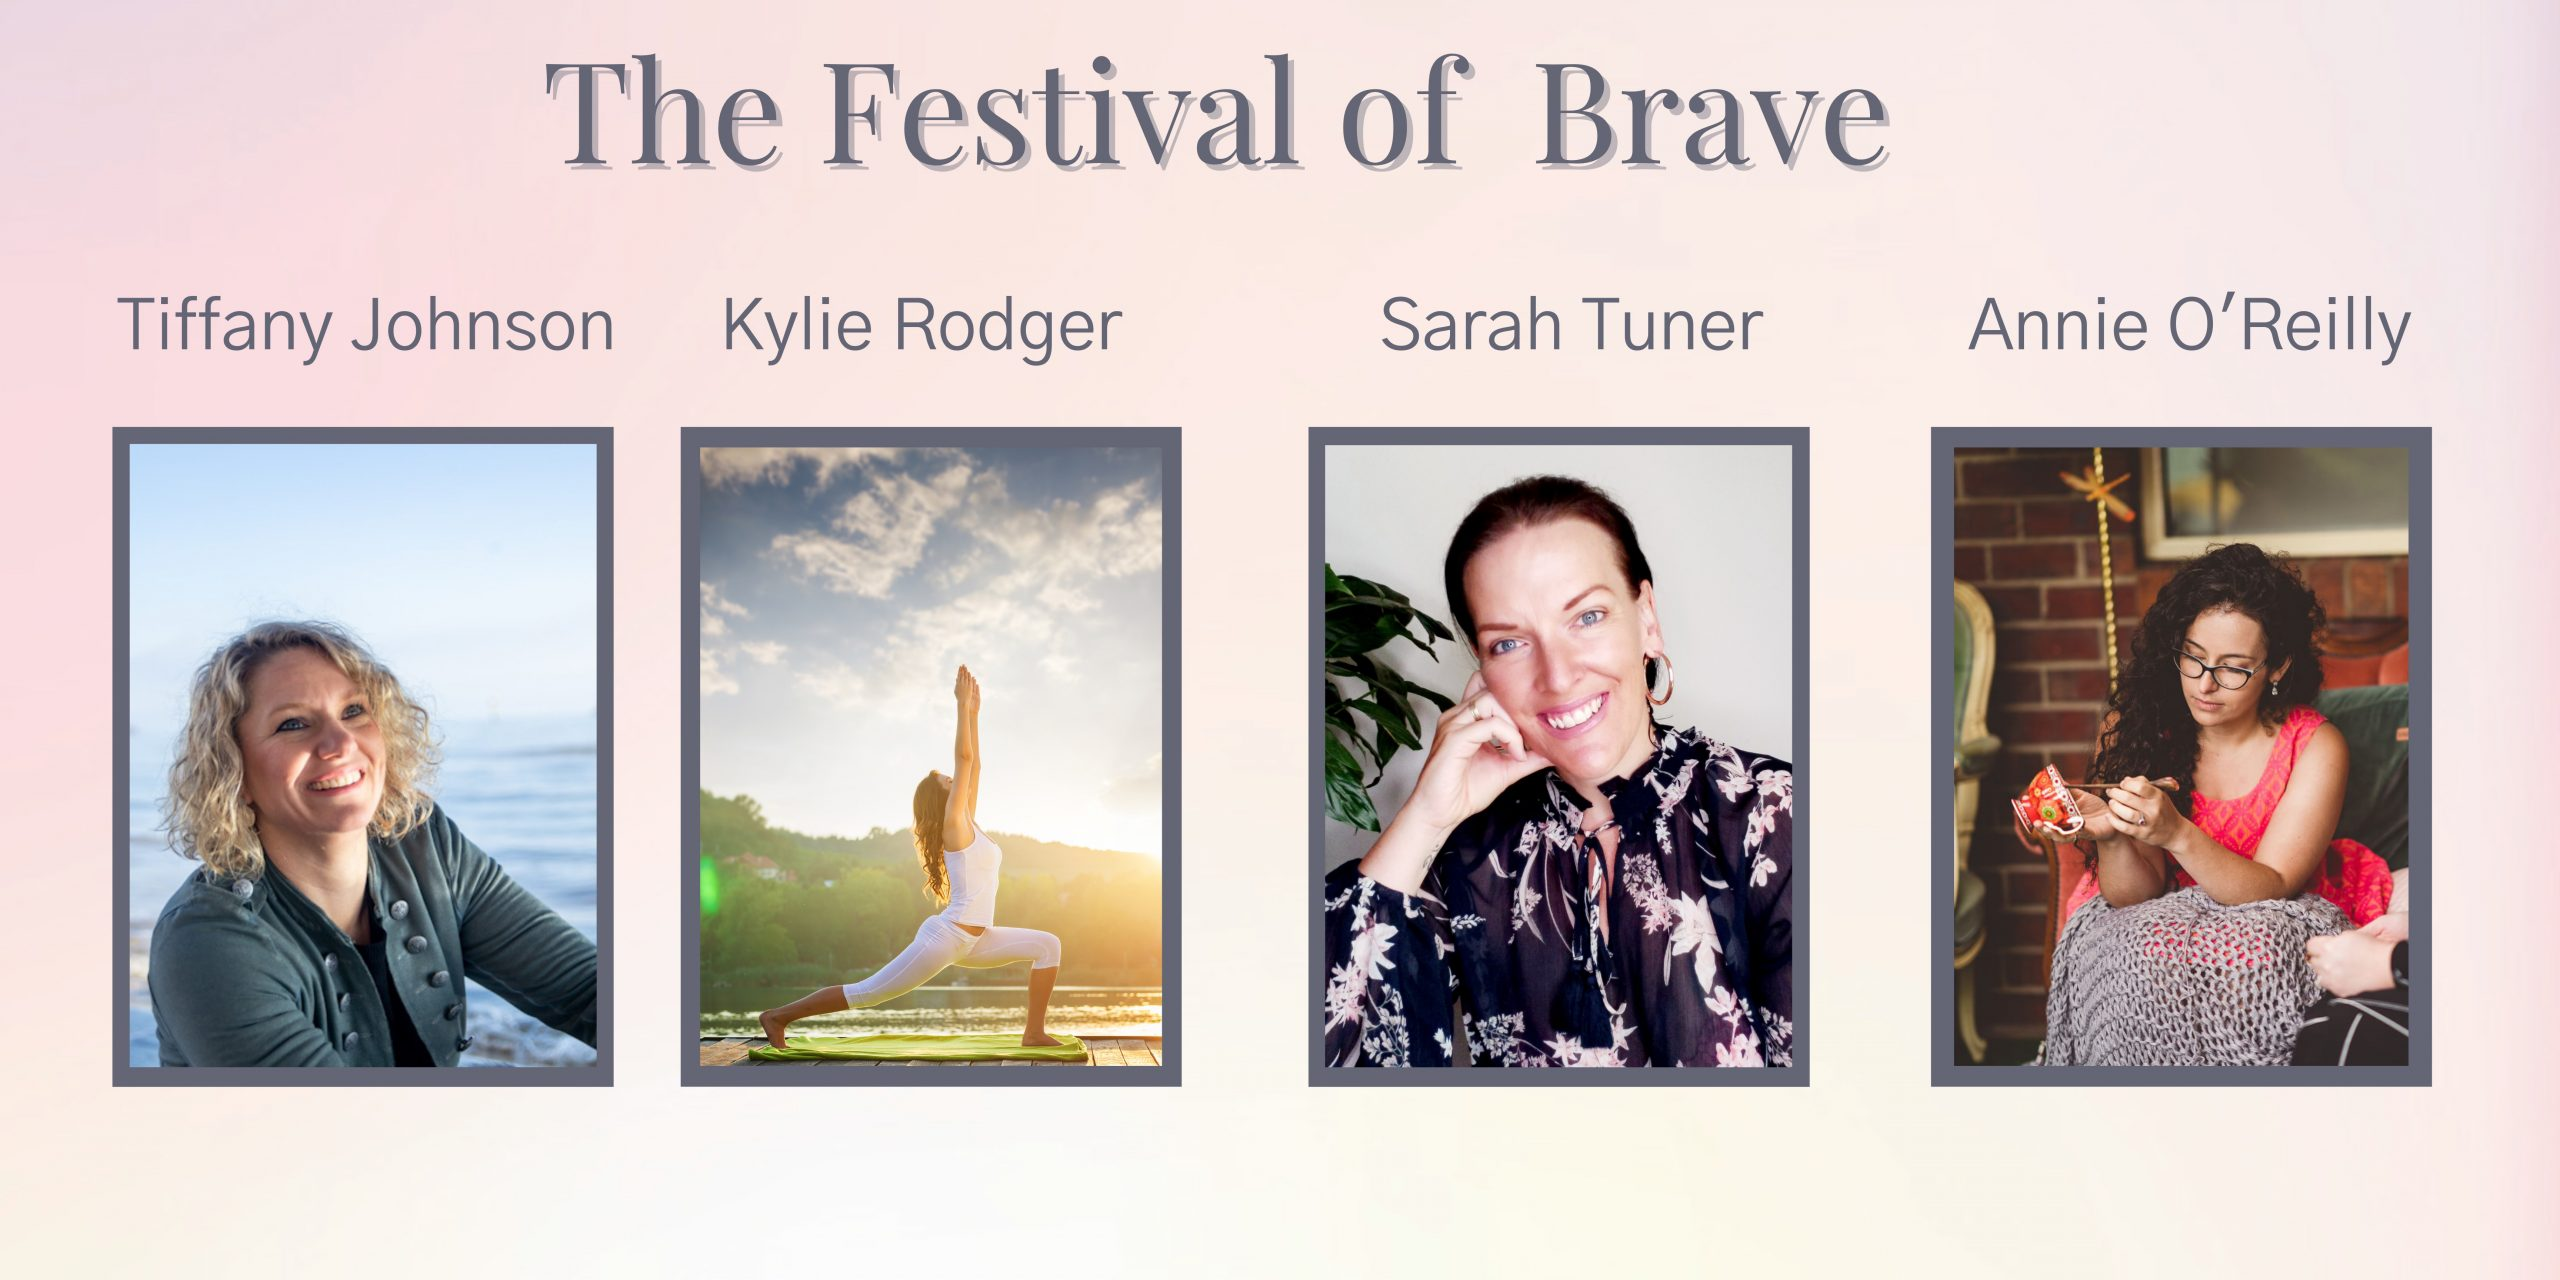 The Festival of Brave